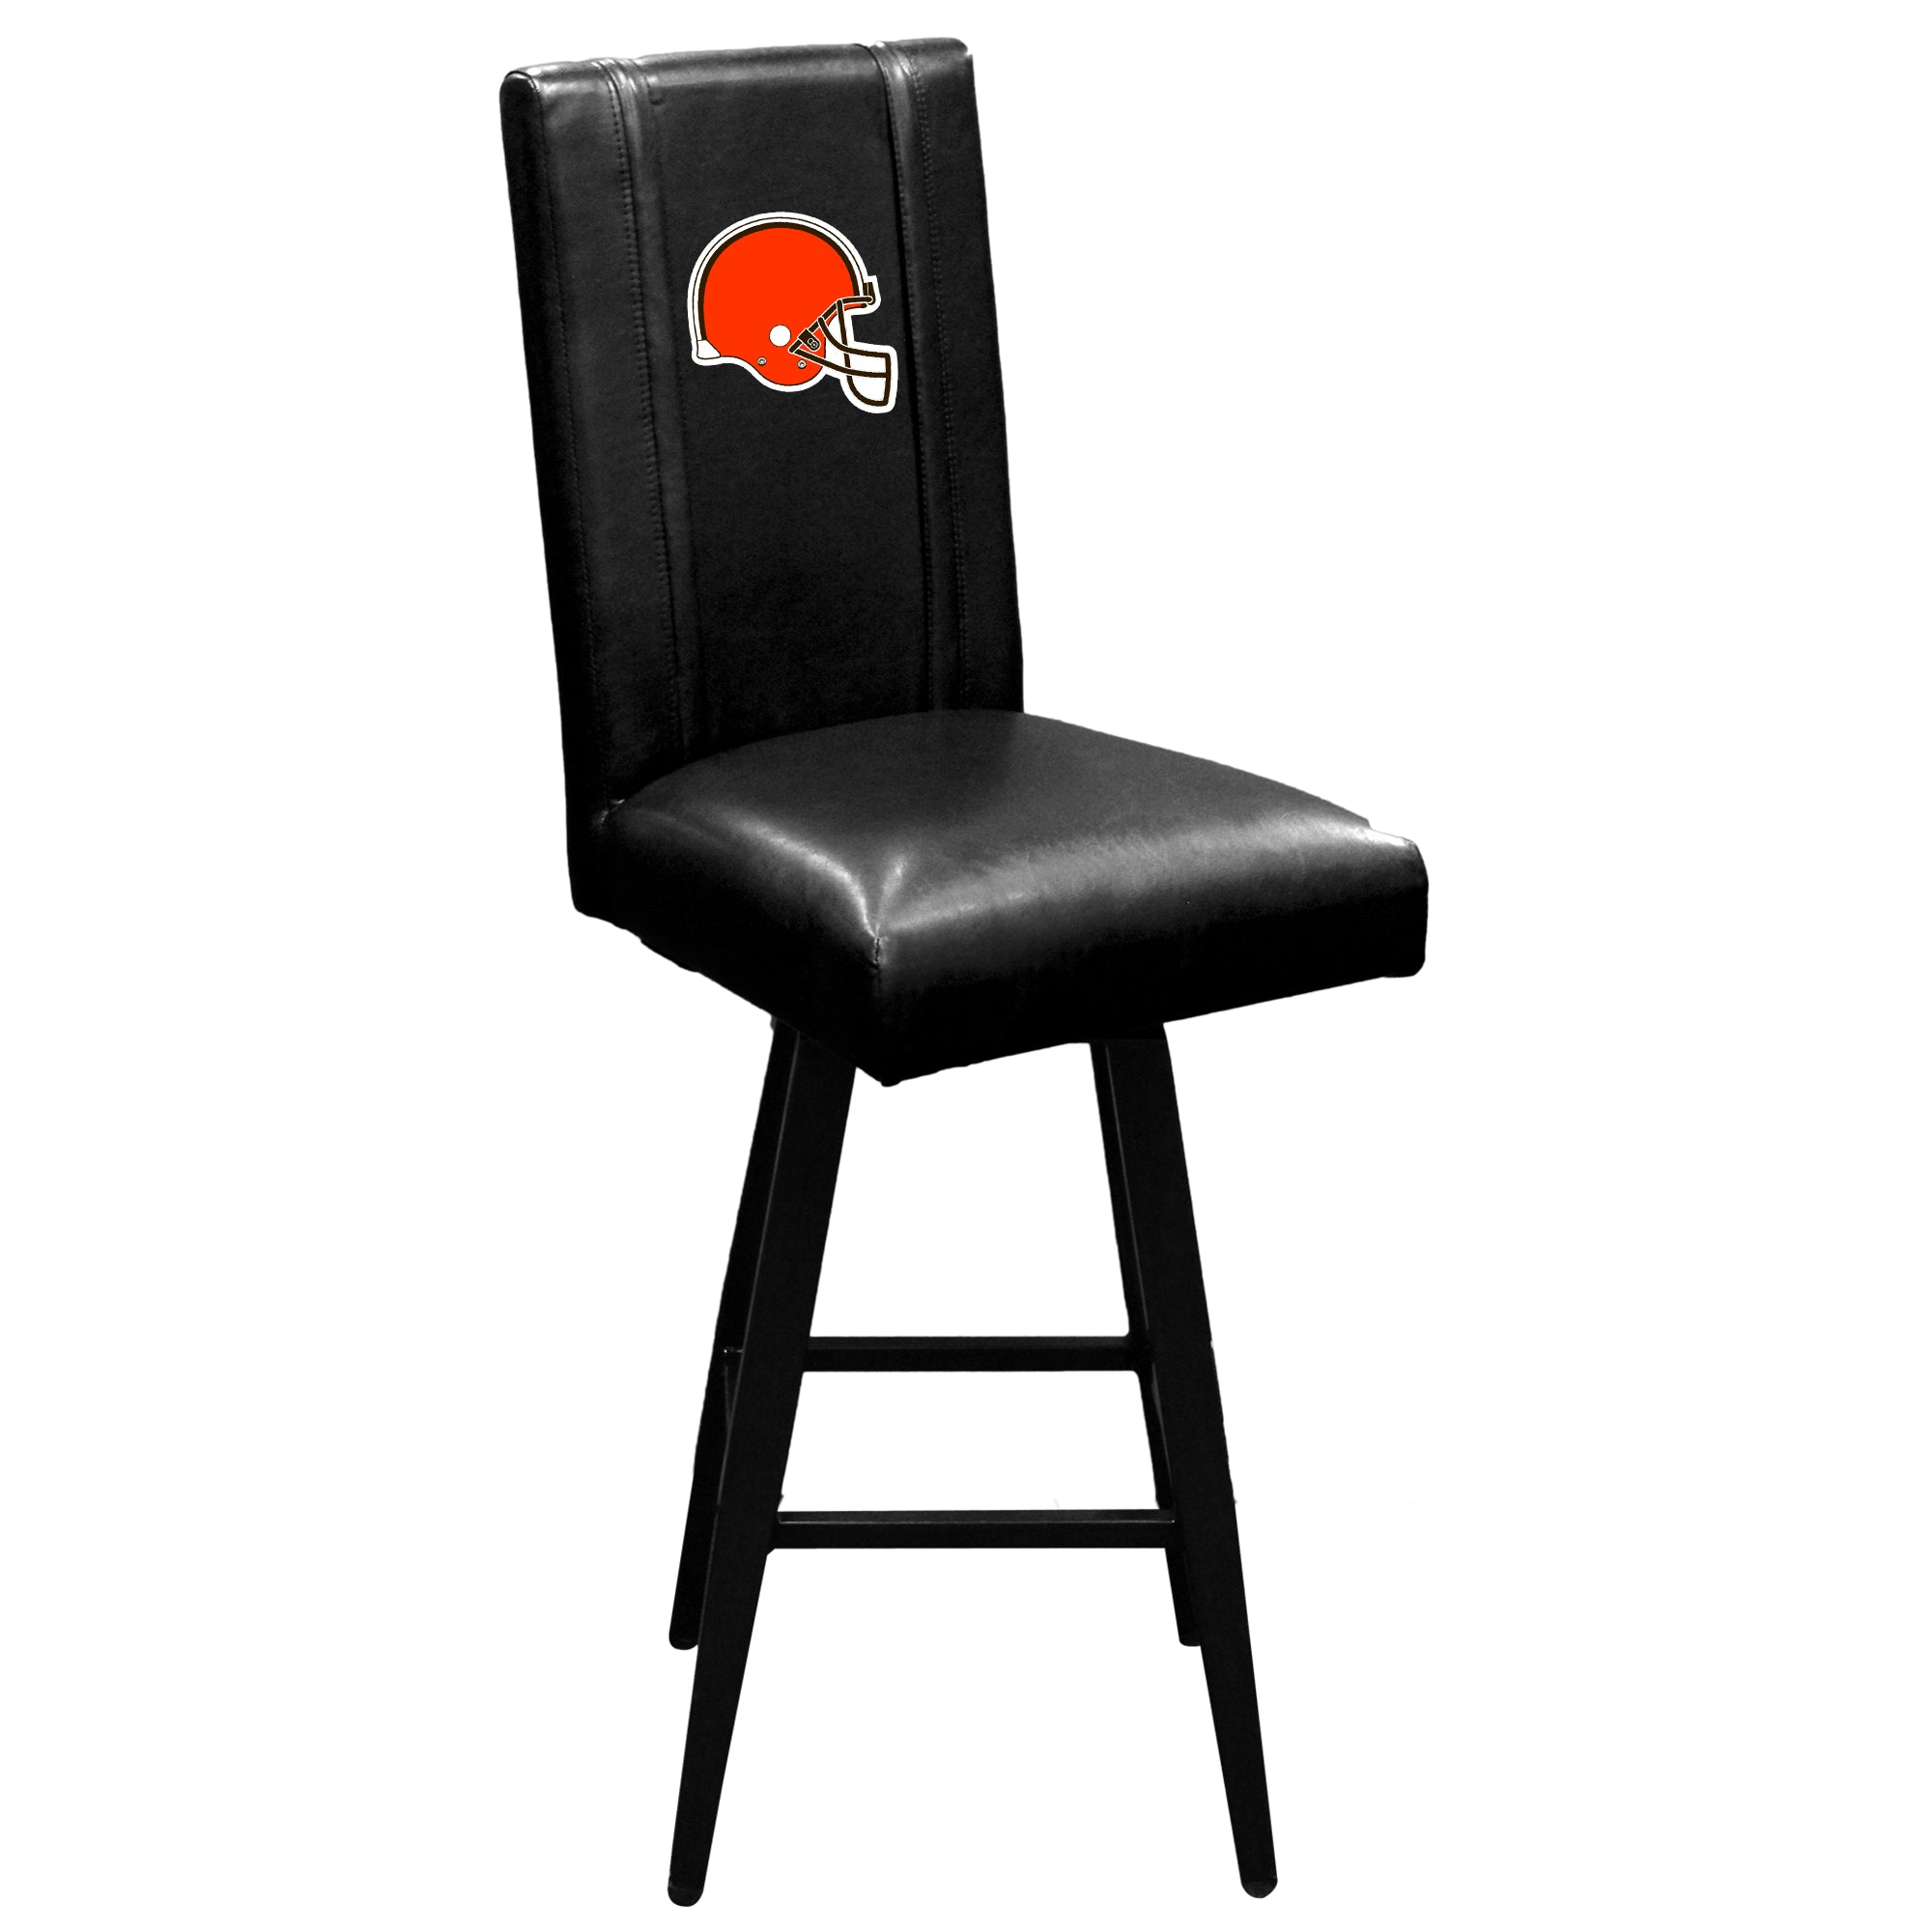 Swivel Bar Stool 2000 with  Cleveland Browns Helmet Logo